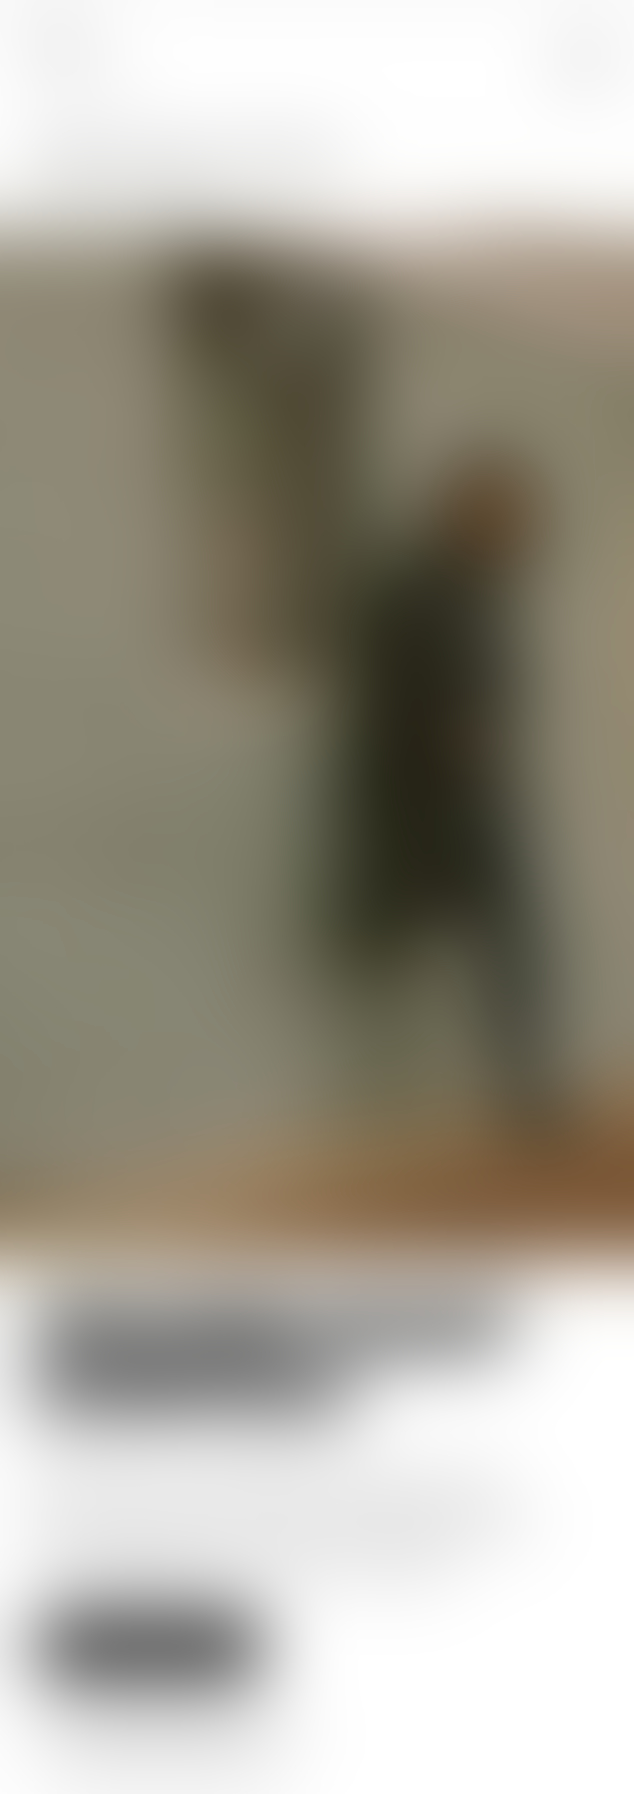 Intentionally blurred image.